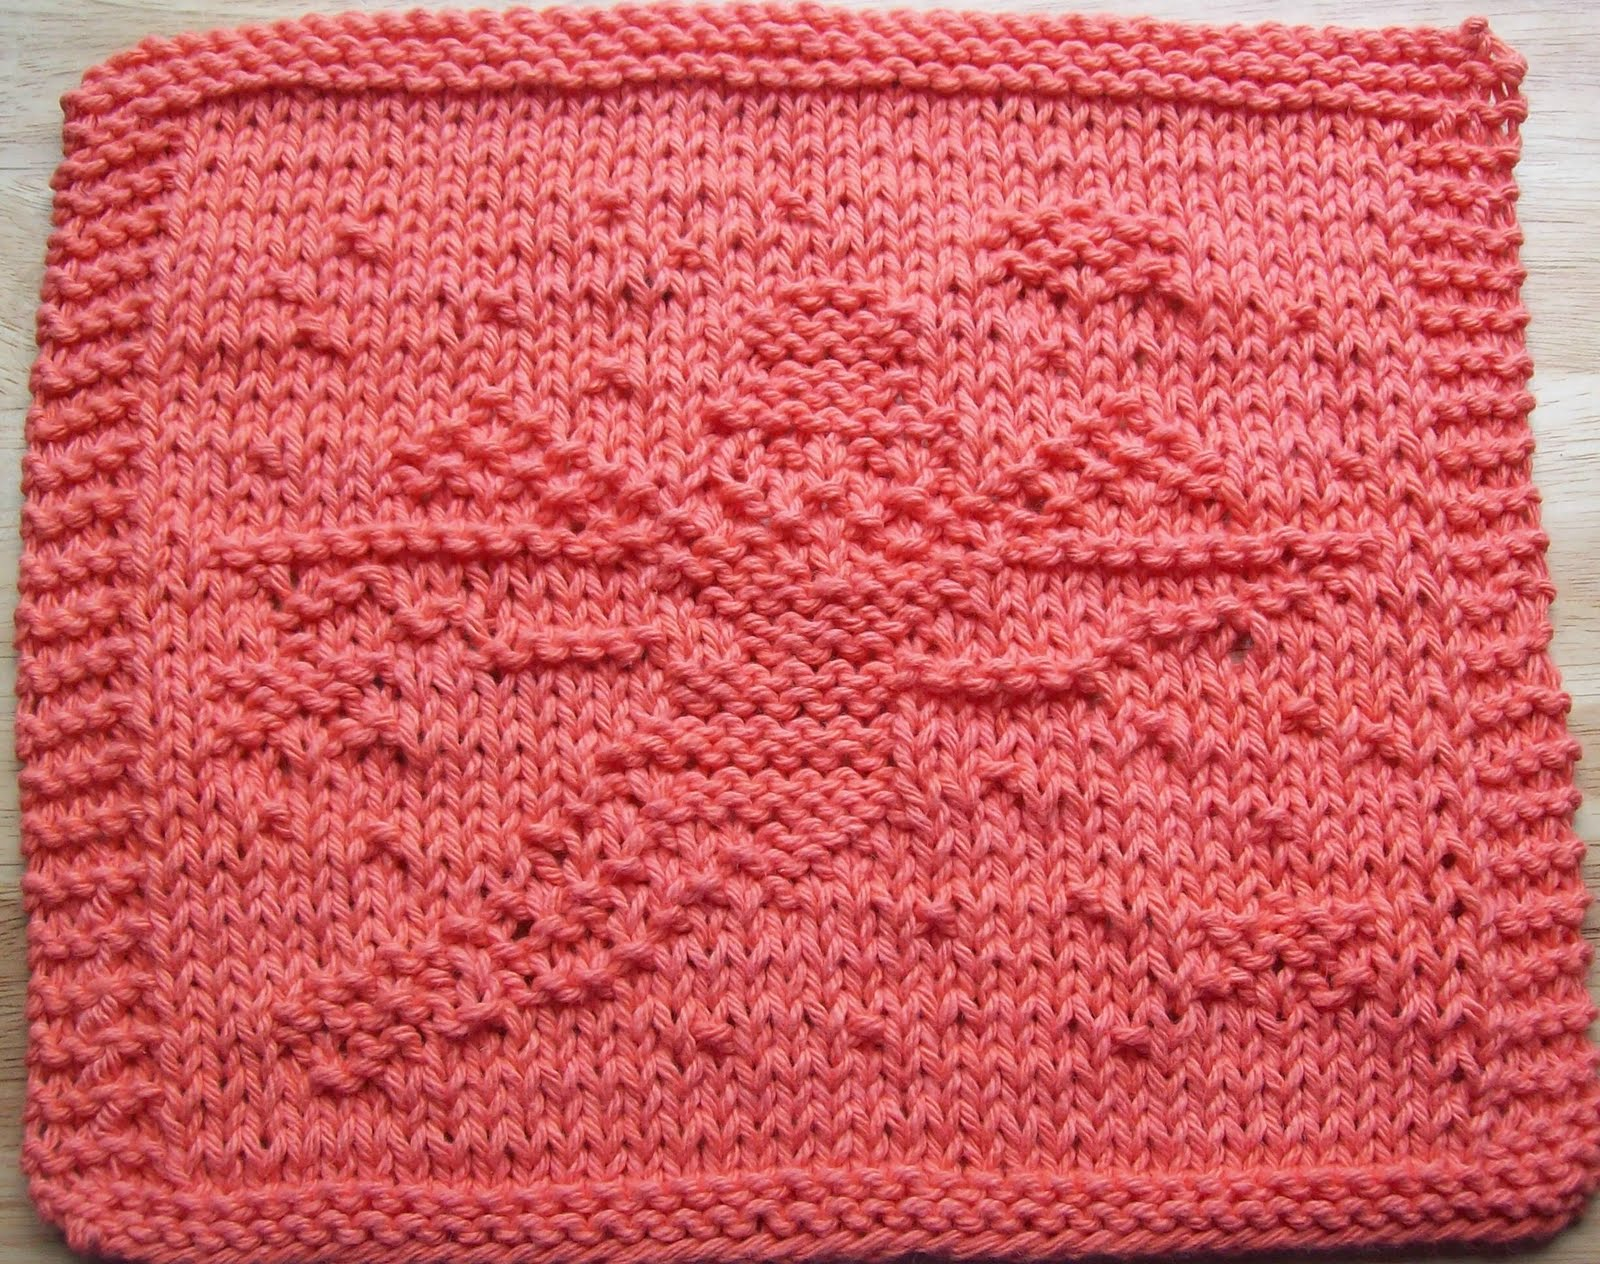 DigKnitty Designs: Fairy Too Knit Dishcloth Pattern